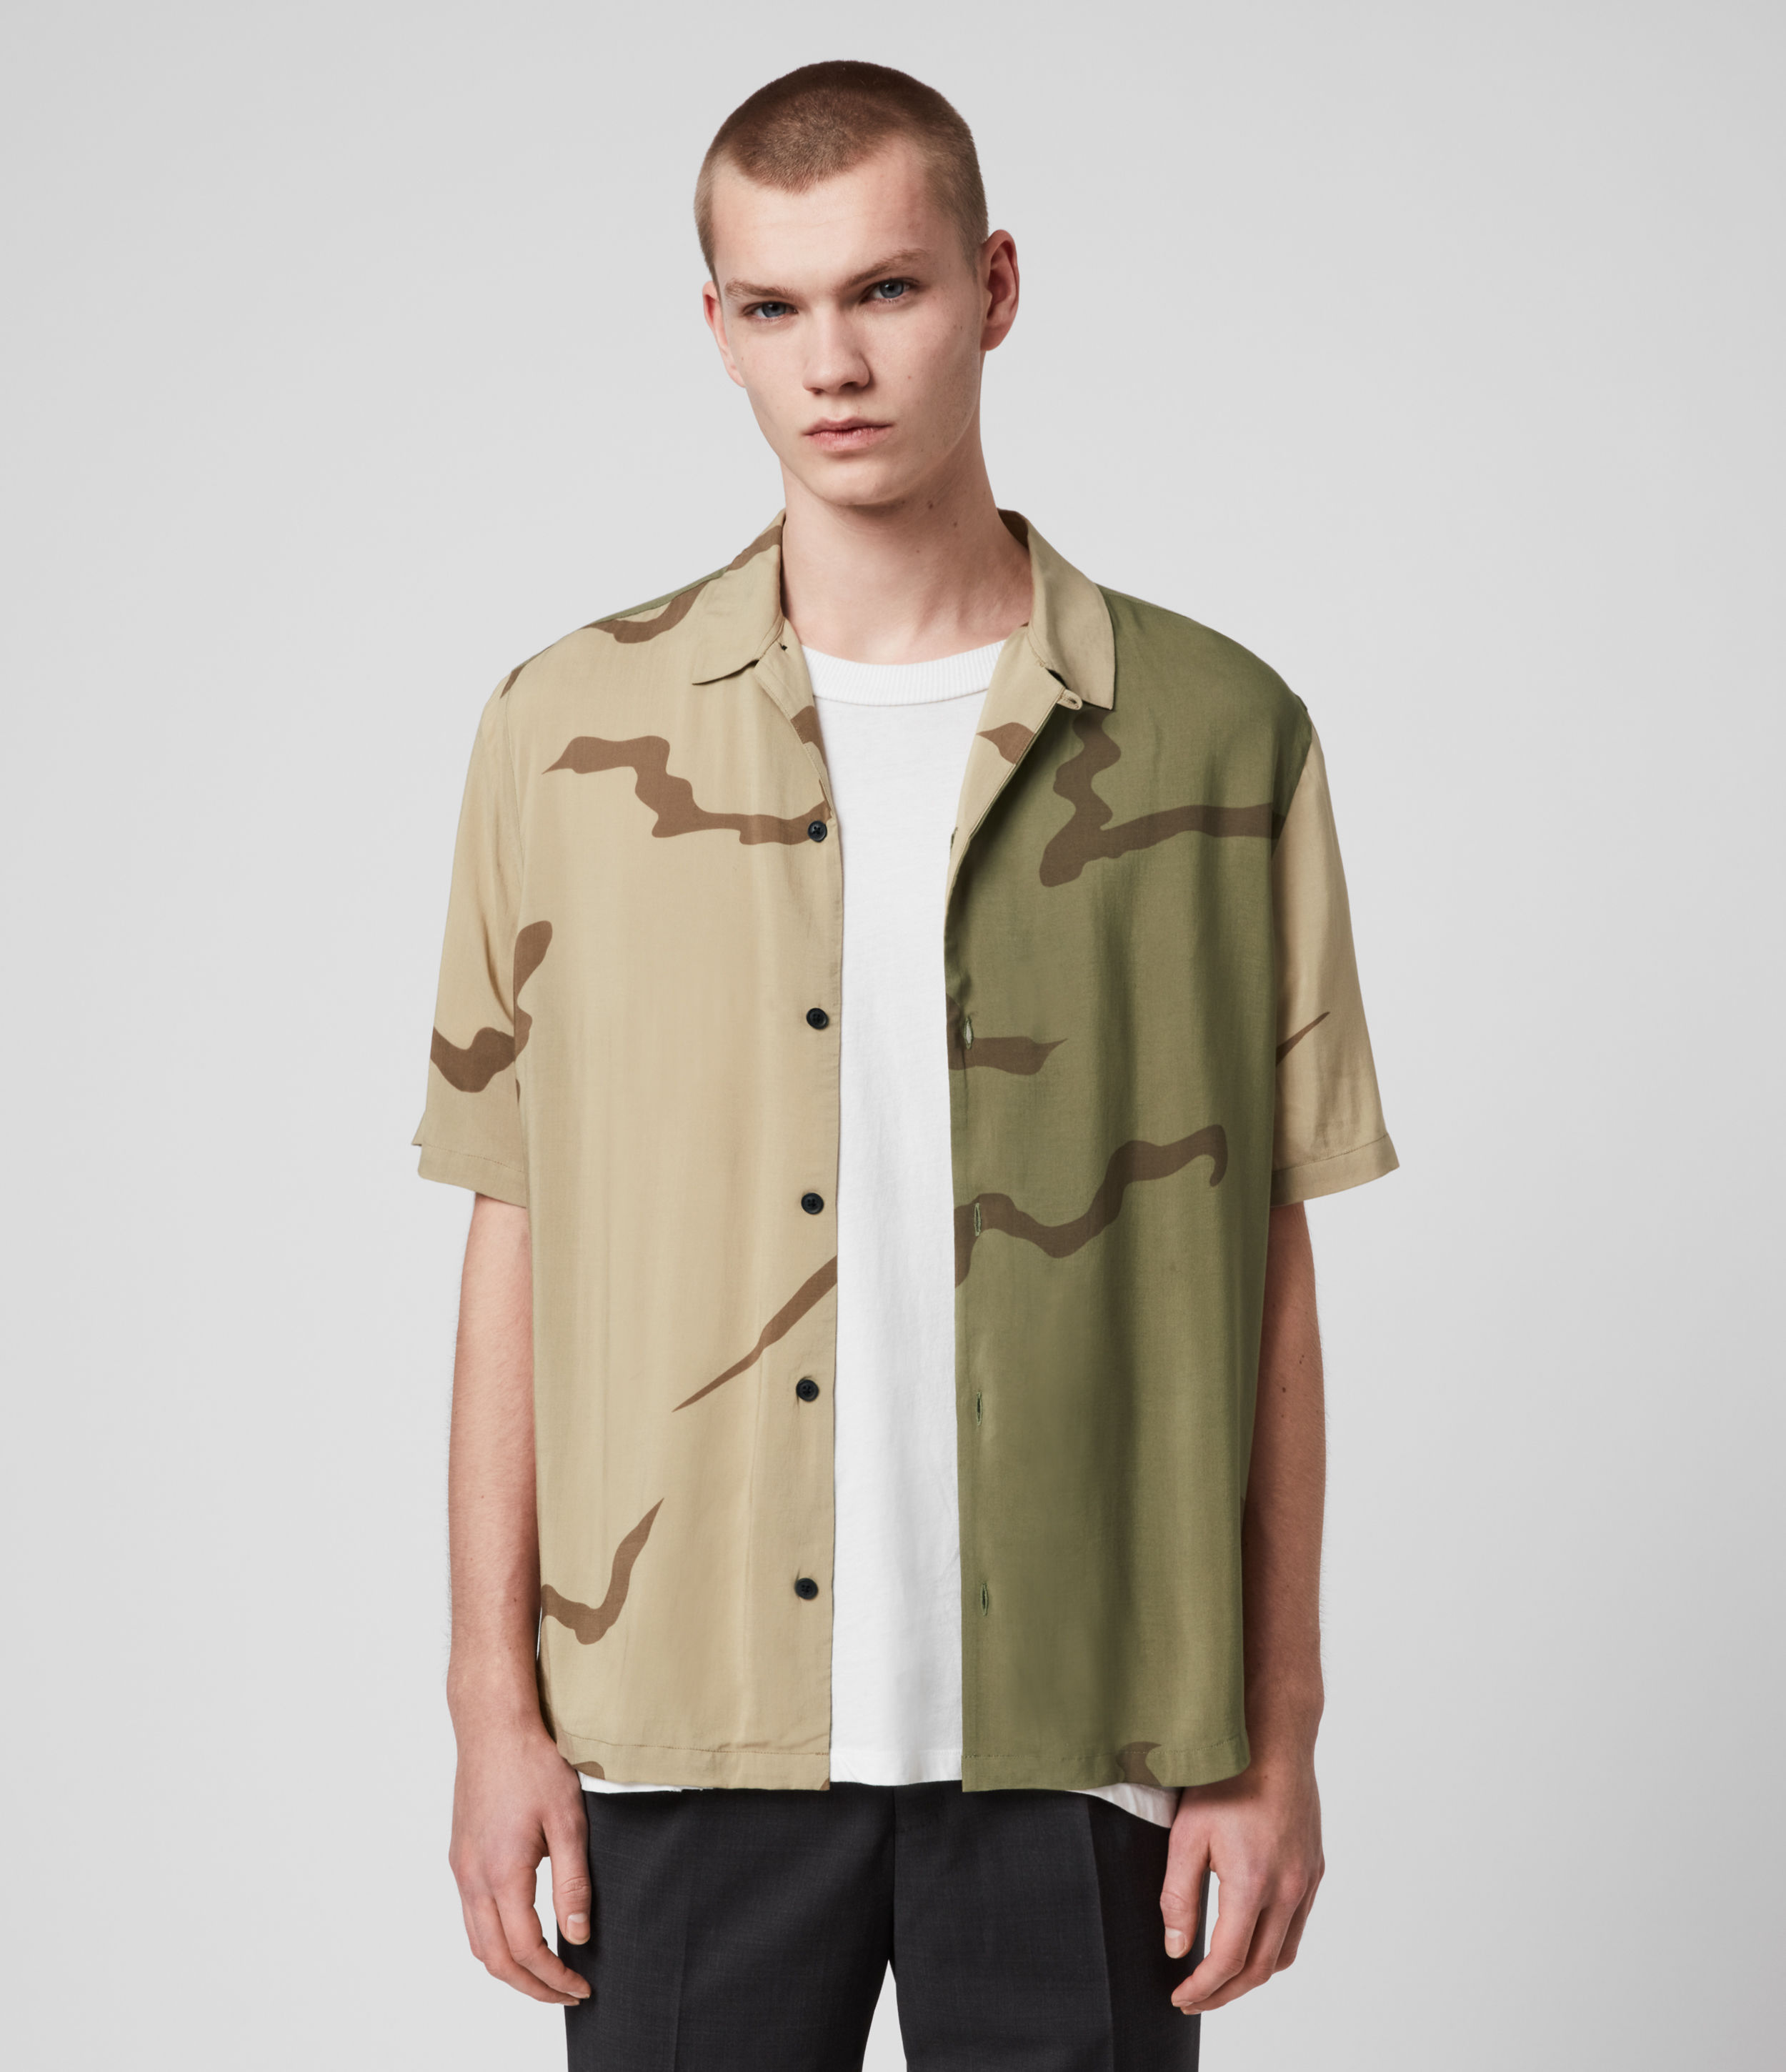 AllSaints Men's Screen Print Lightweight Invasion Shirt, Green and Brown, Size: M